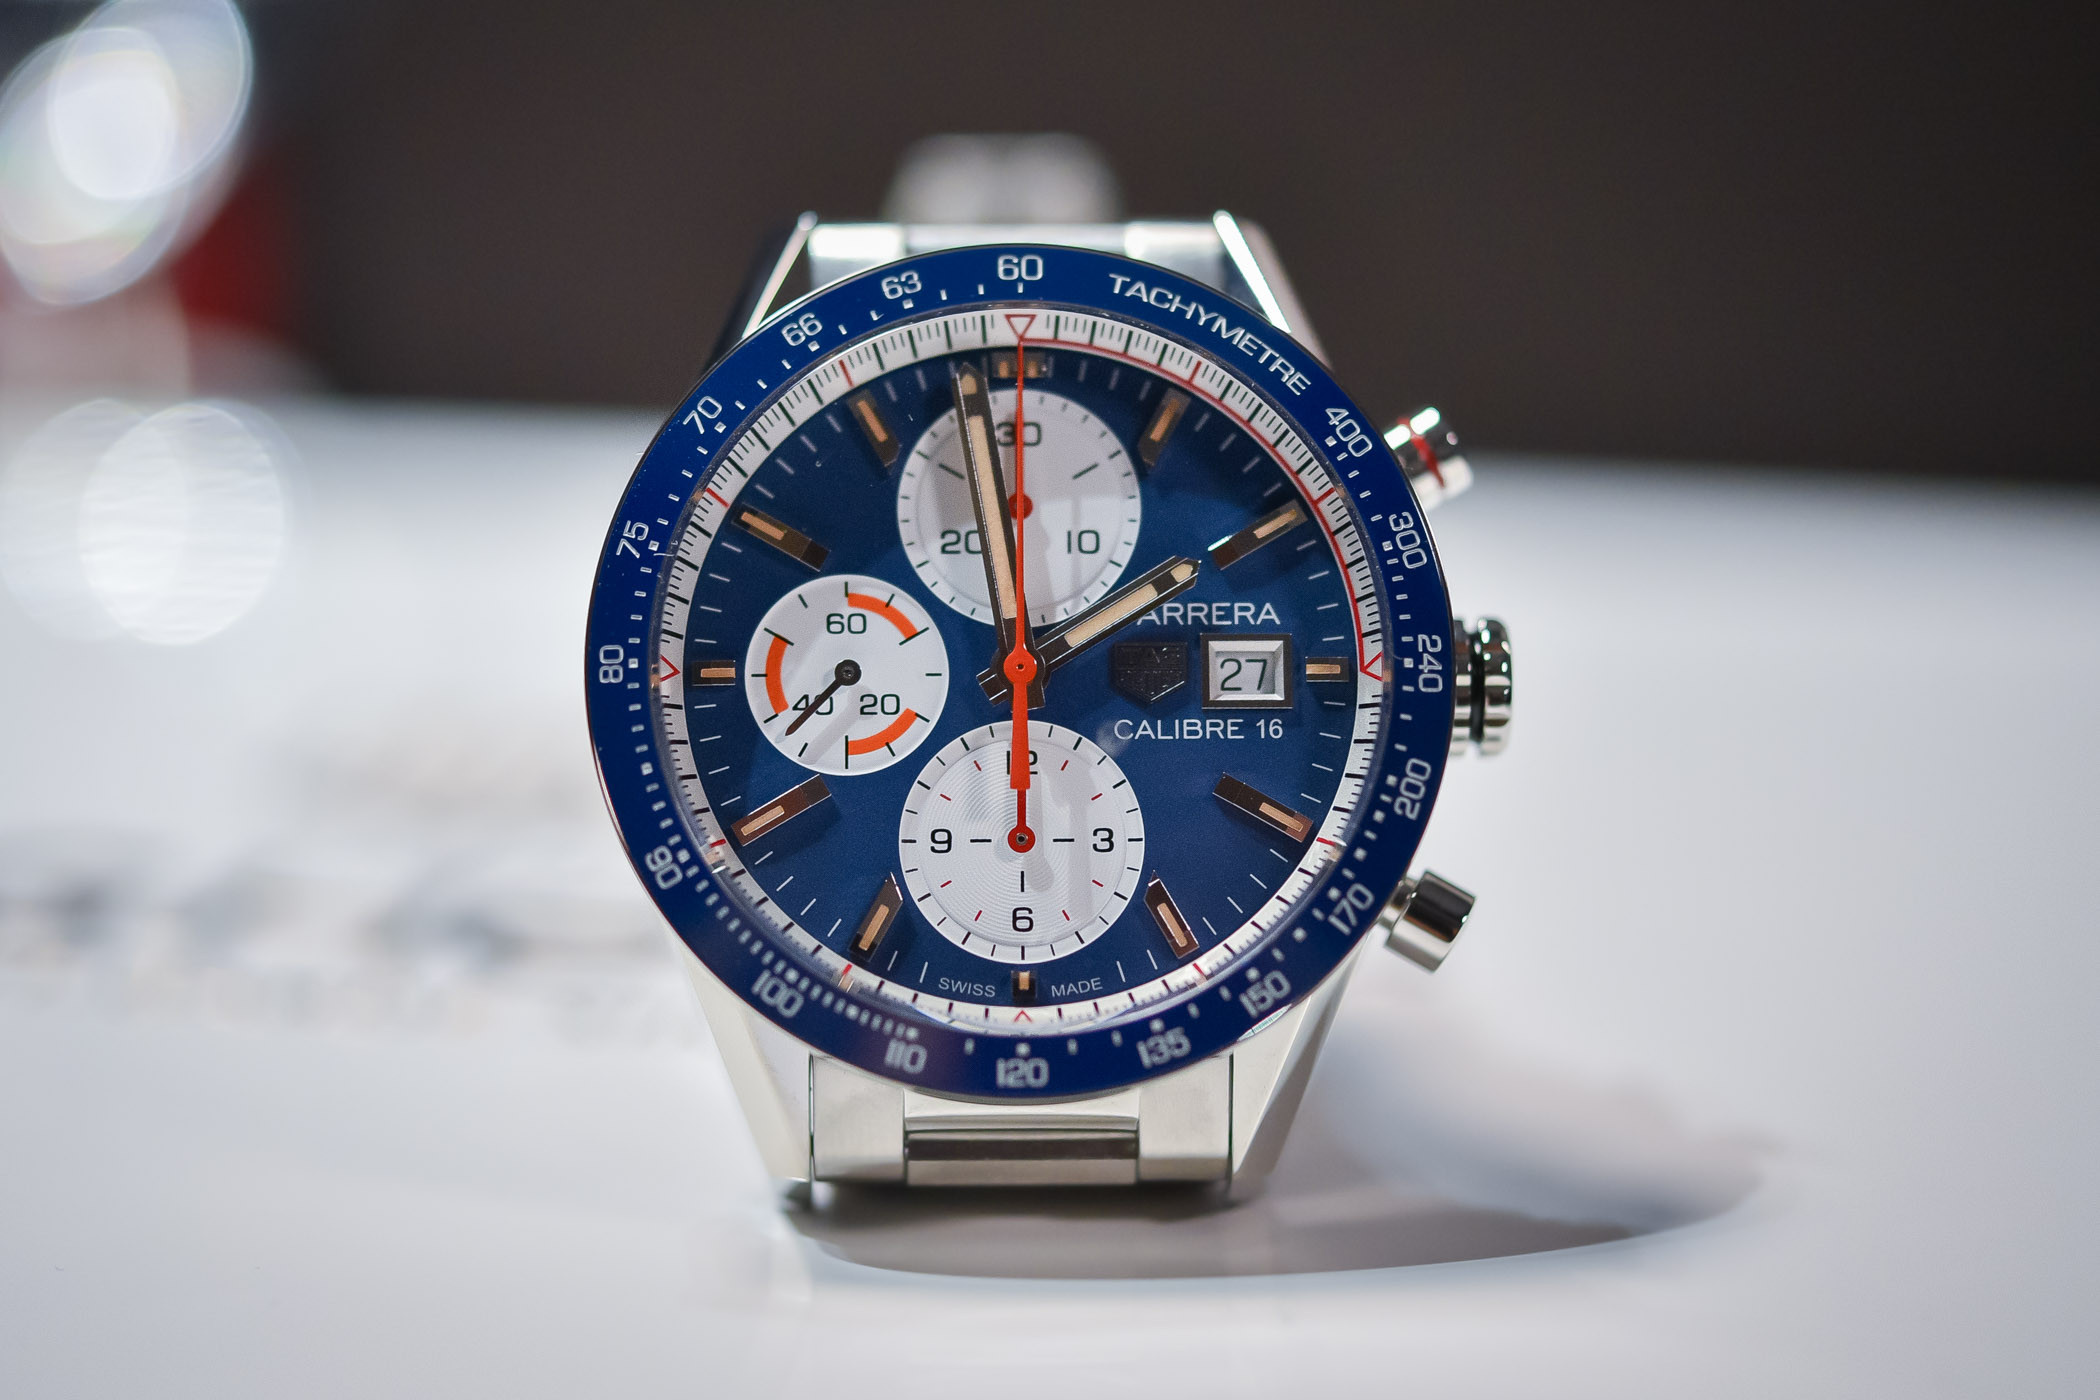 TAG Heuer Carrera Calibre 16 Chronograph Baselworld 2018